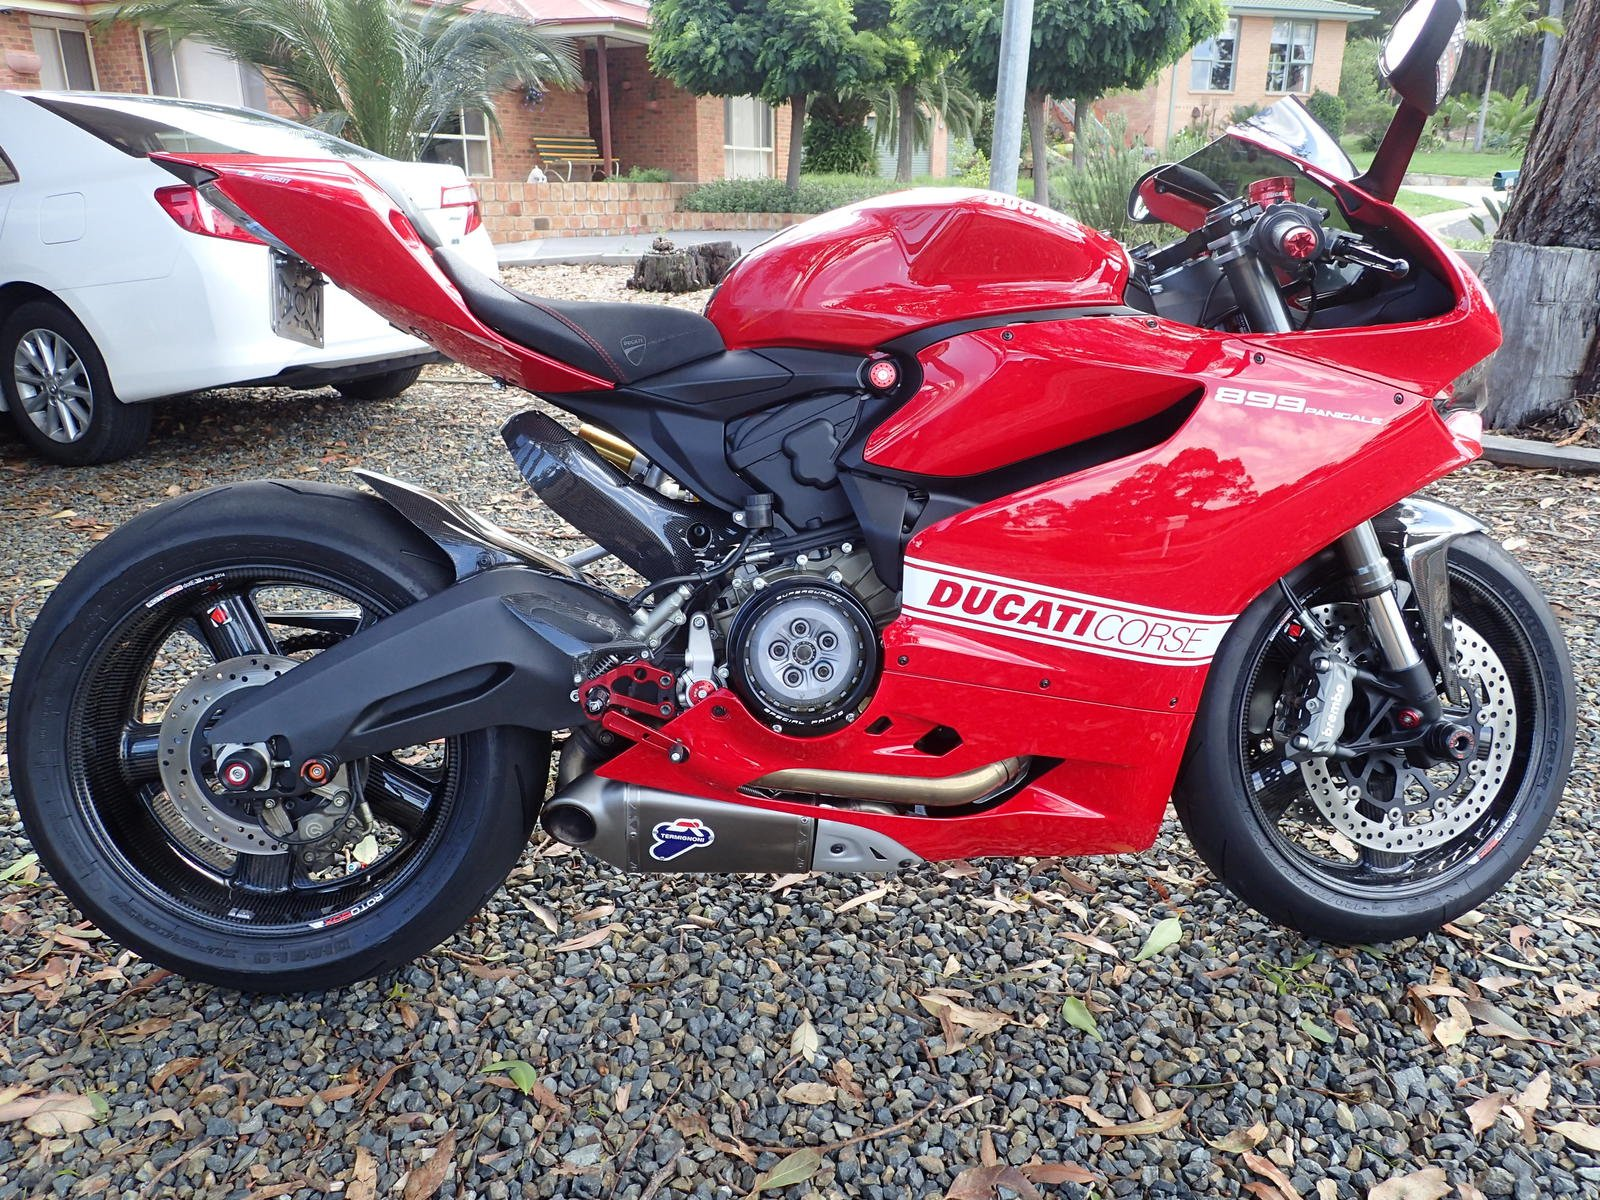 red ducati 899 panigale picture thread page 15 ducati. Black Bedroom Furniture Sets. Home Design Ideas